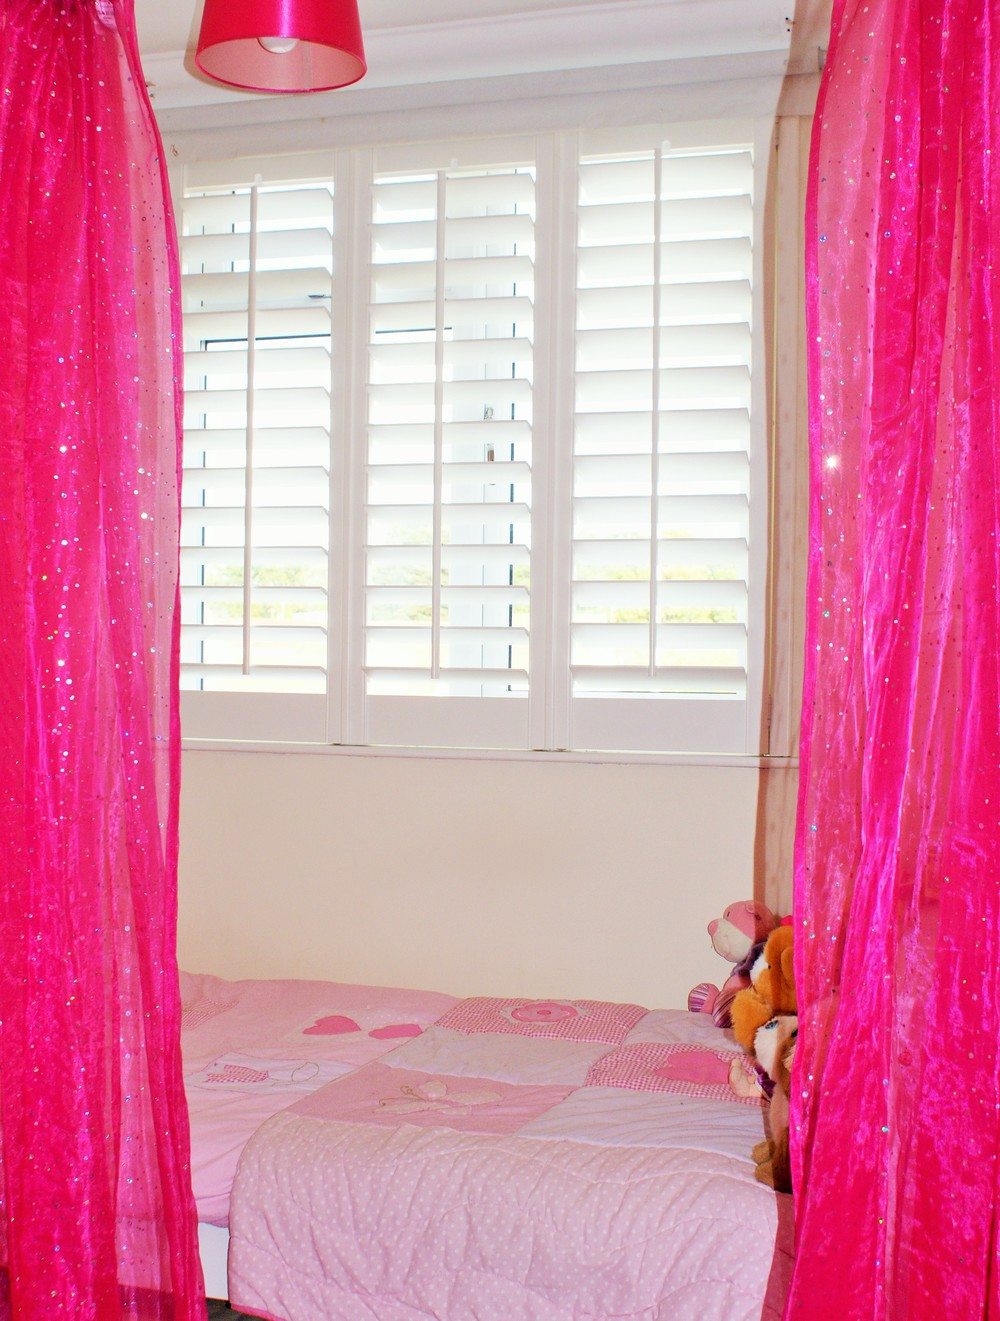 girls-bedroom-ideas-child-safe-cheap-interior-window-shutters-blinds-£270.JPG